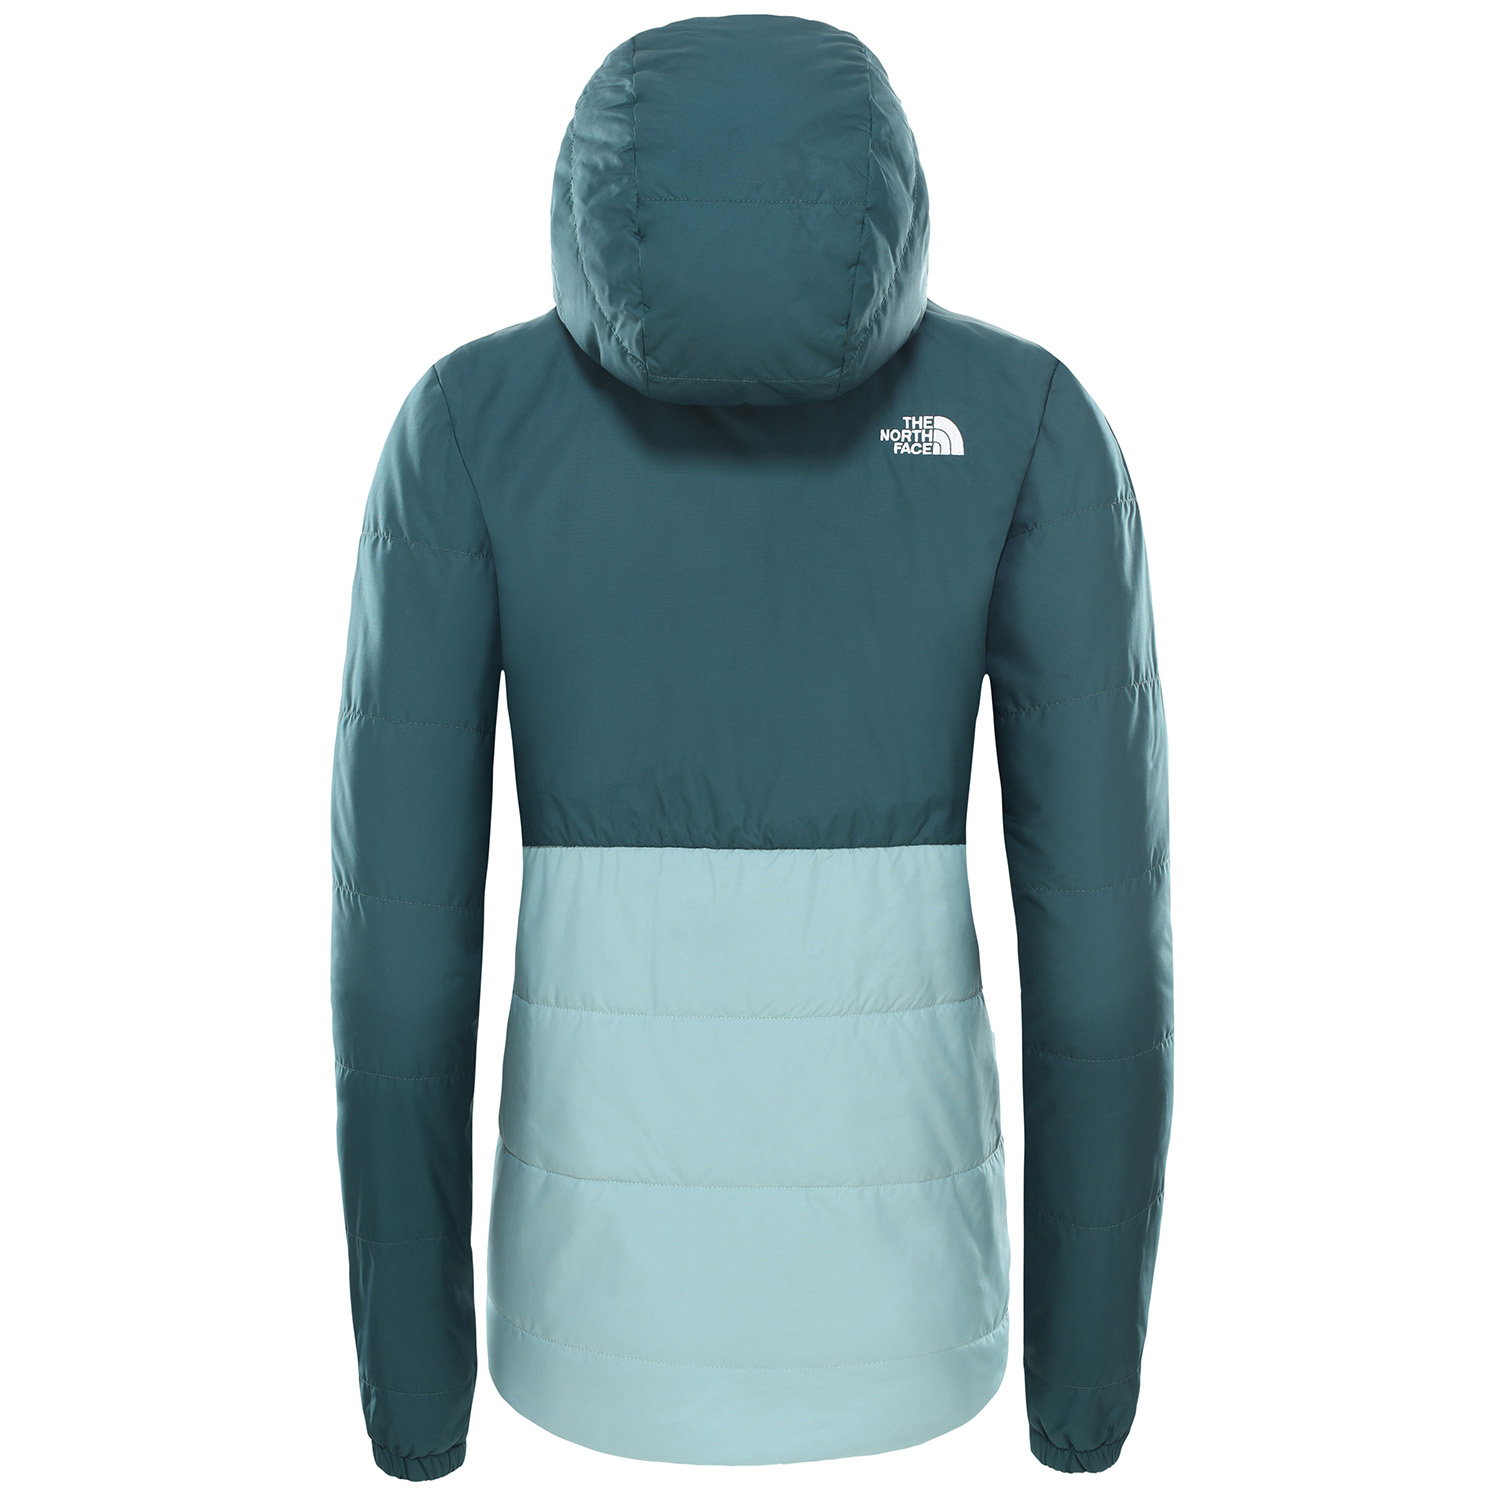 North Face Insulated Fanorak Jakke available from Blackleaf